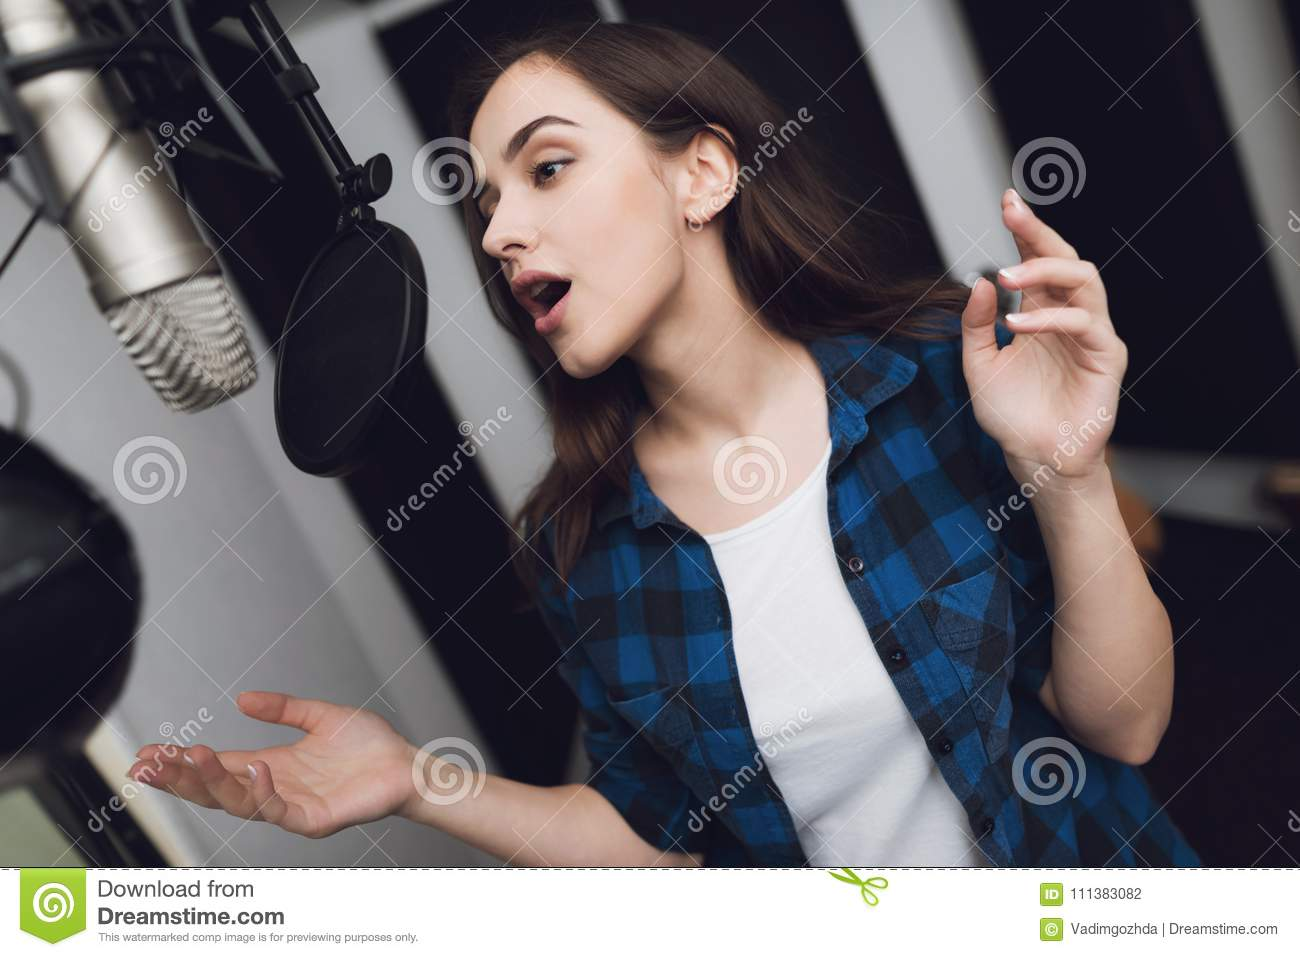 Who sings the song A Girl from High Society